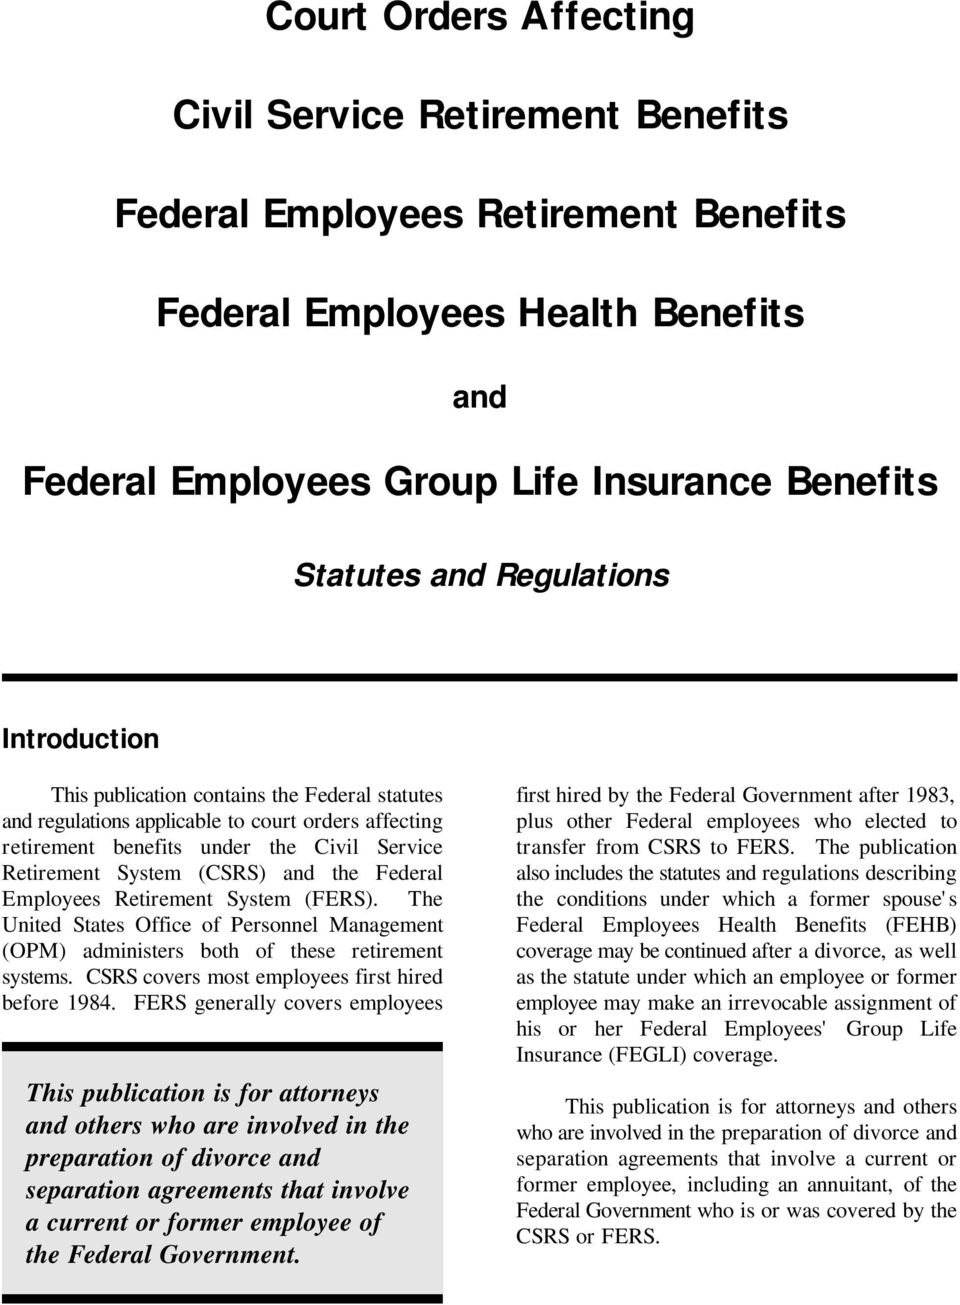 the Federal Employees Retirement System (FERS). The United States Office of Personnel Management (OPM) administers both of these retirement systems. CSRS covers most employees first hired before 1984.